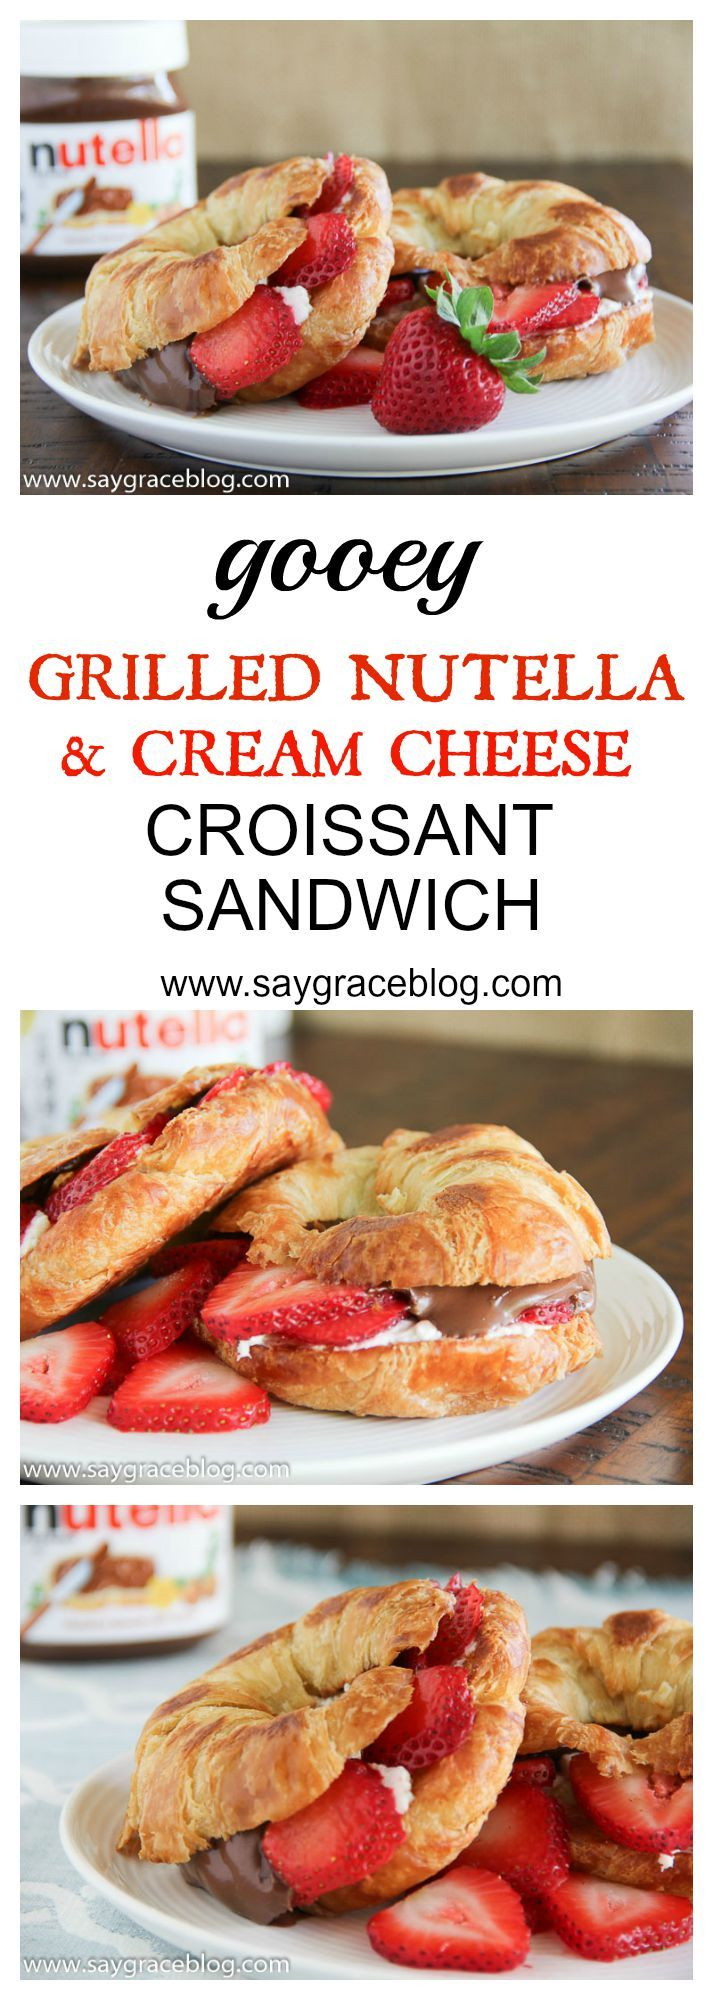 A chocolaty hazelnut spread meets cream cheese and fresh strawberries all grilled on a buttery croissant!